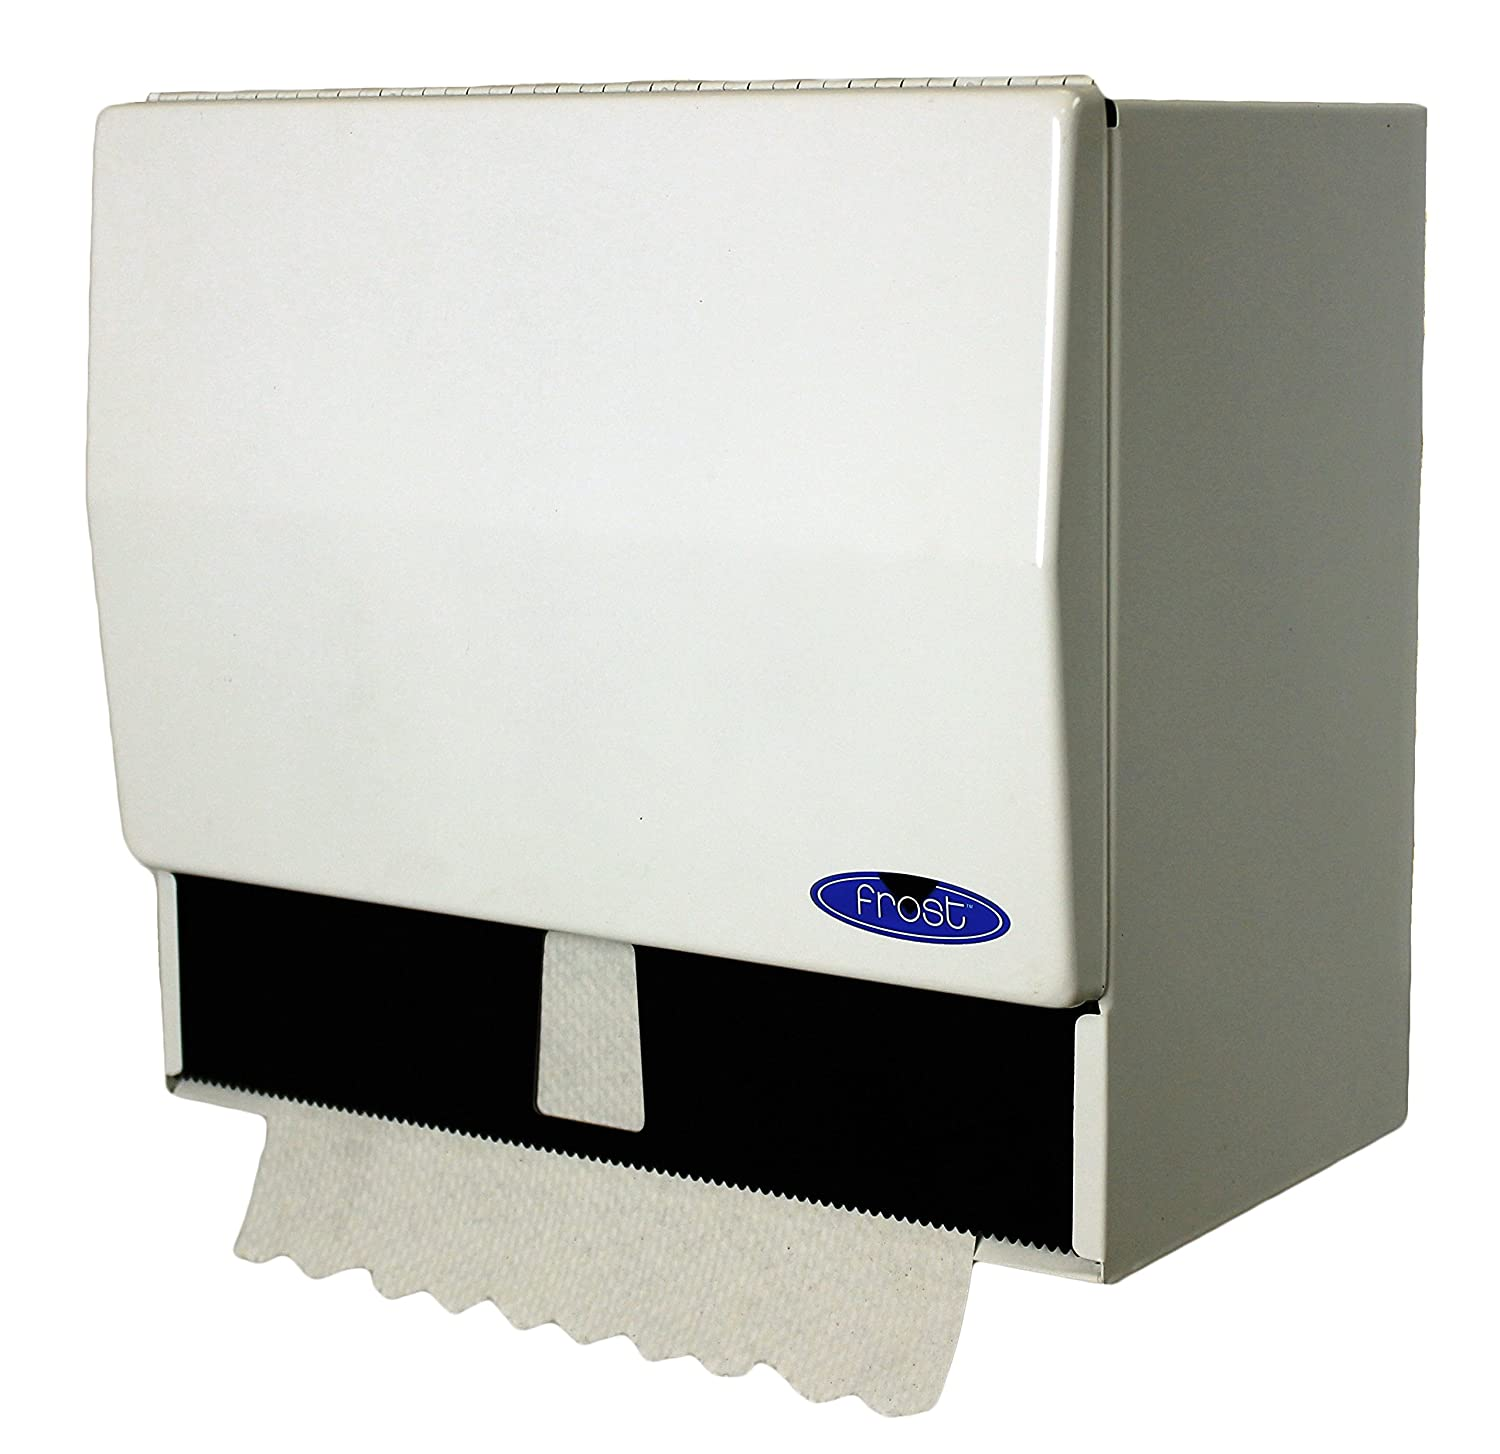 Frost 101 Paper Towel Dispenser, White Frost Products